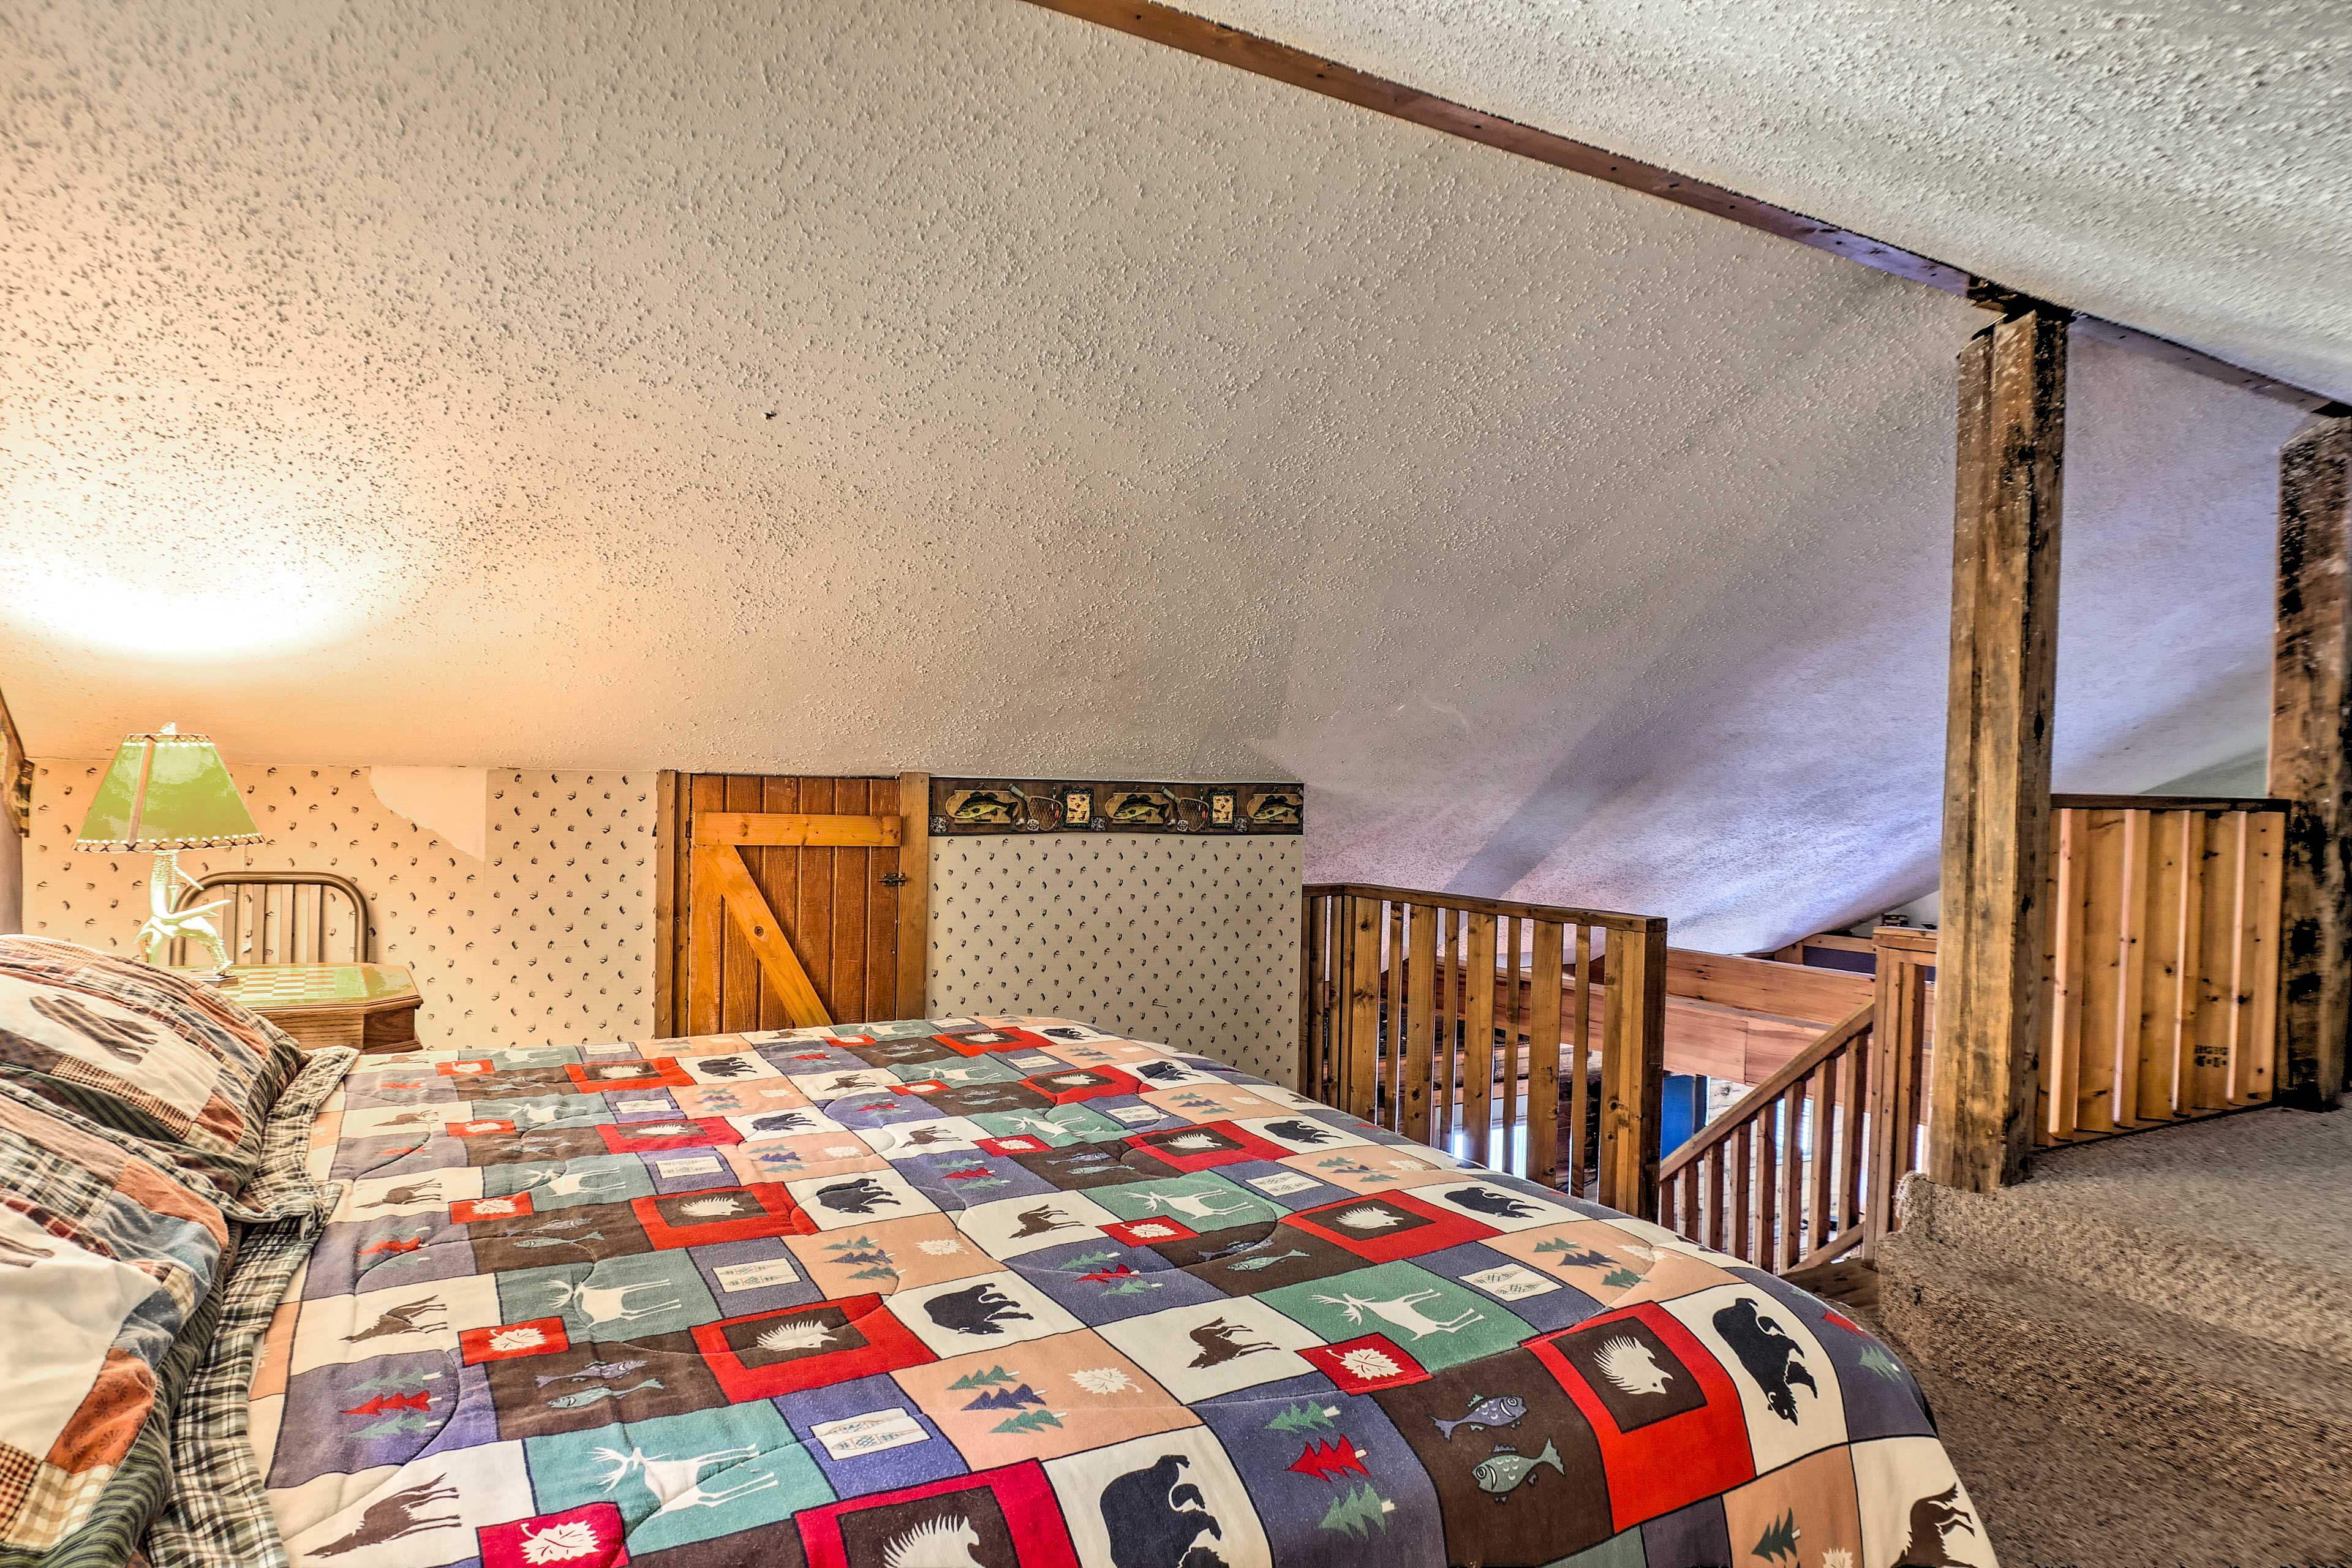 Head over to the other side of the loft to discover another bed!